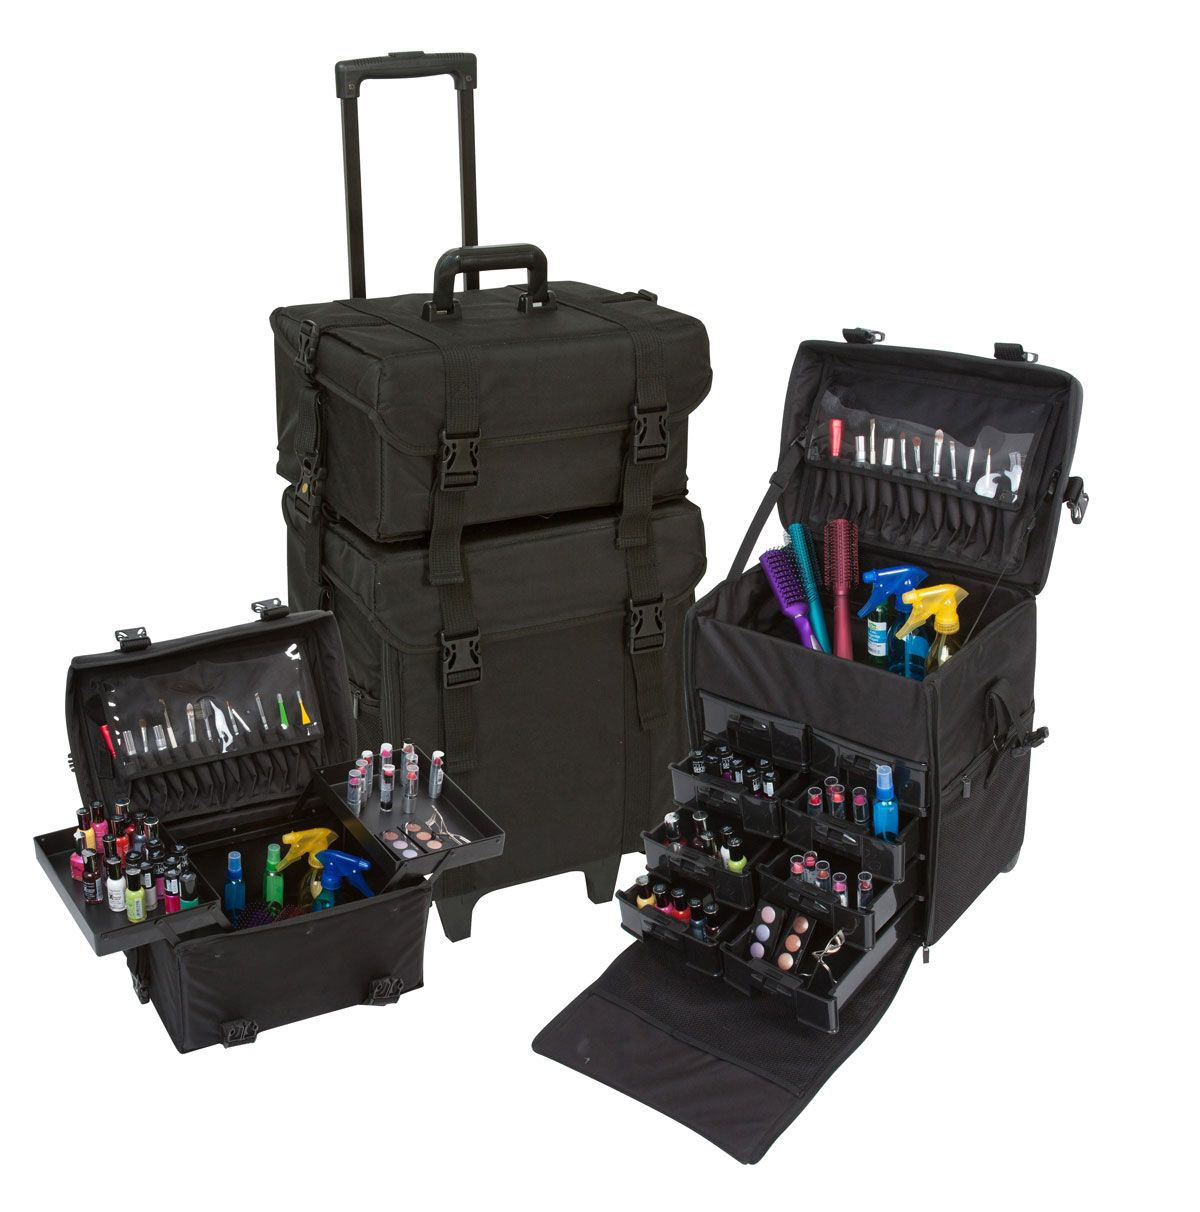 Just arrived! 2 in 1 Black Fabric Rolling Makeup Case Set